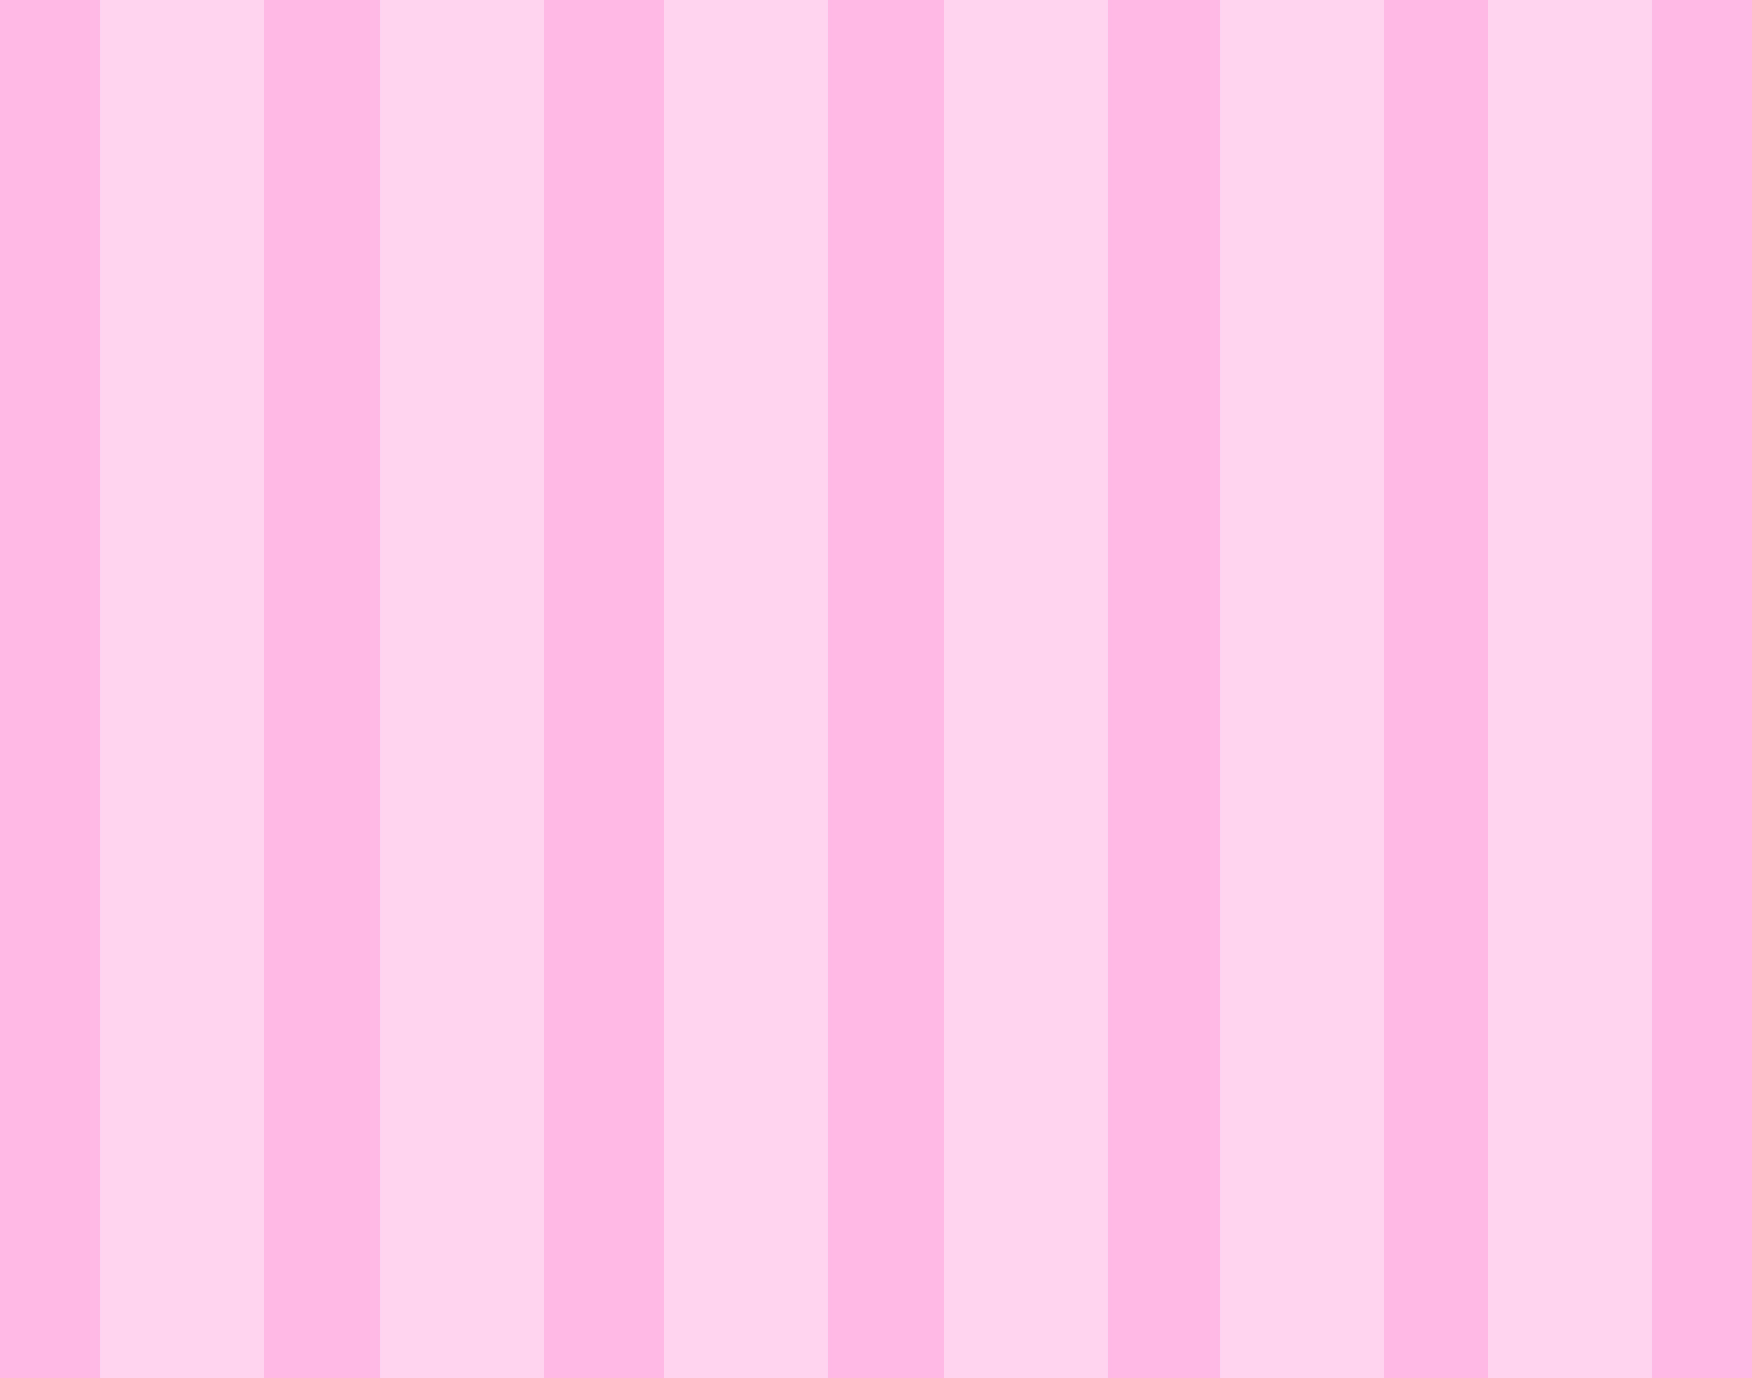 Pink Stripes PPT Backgrounds